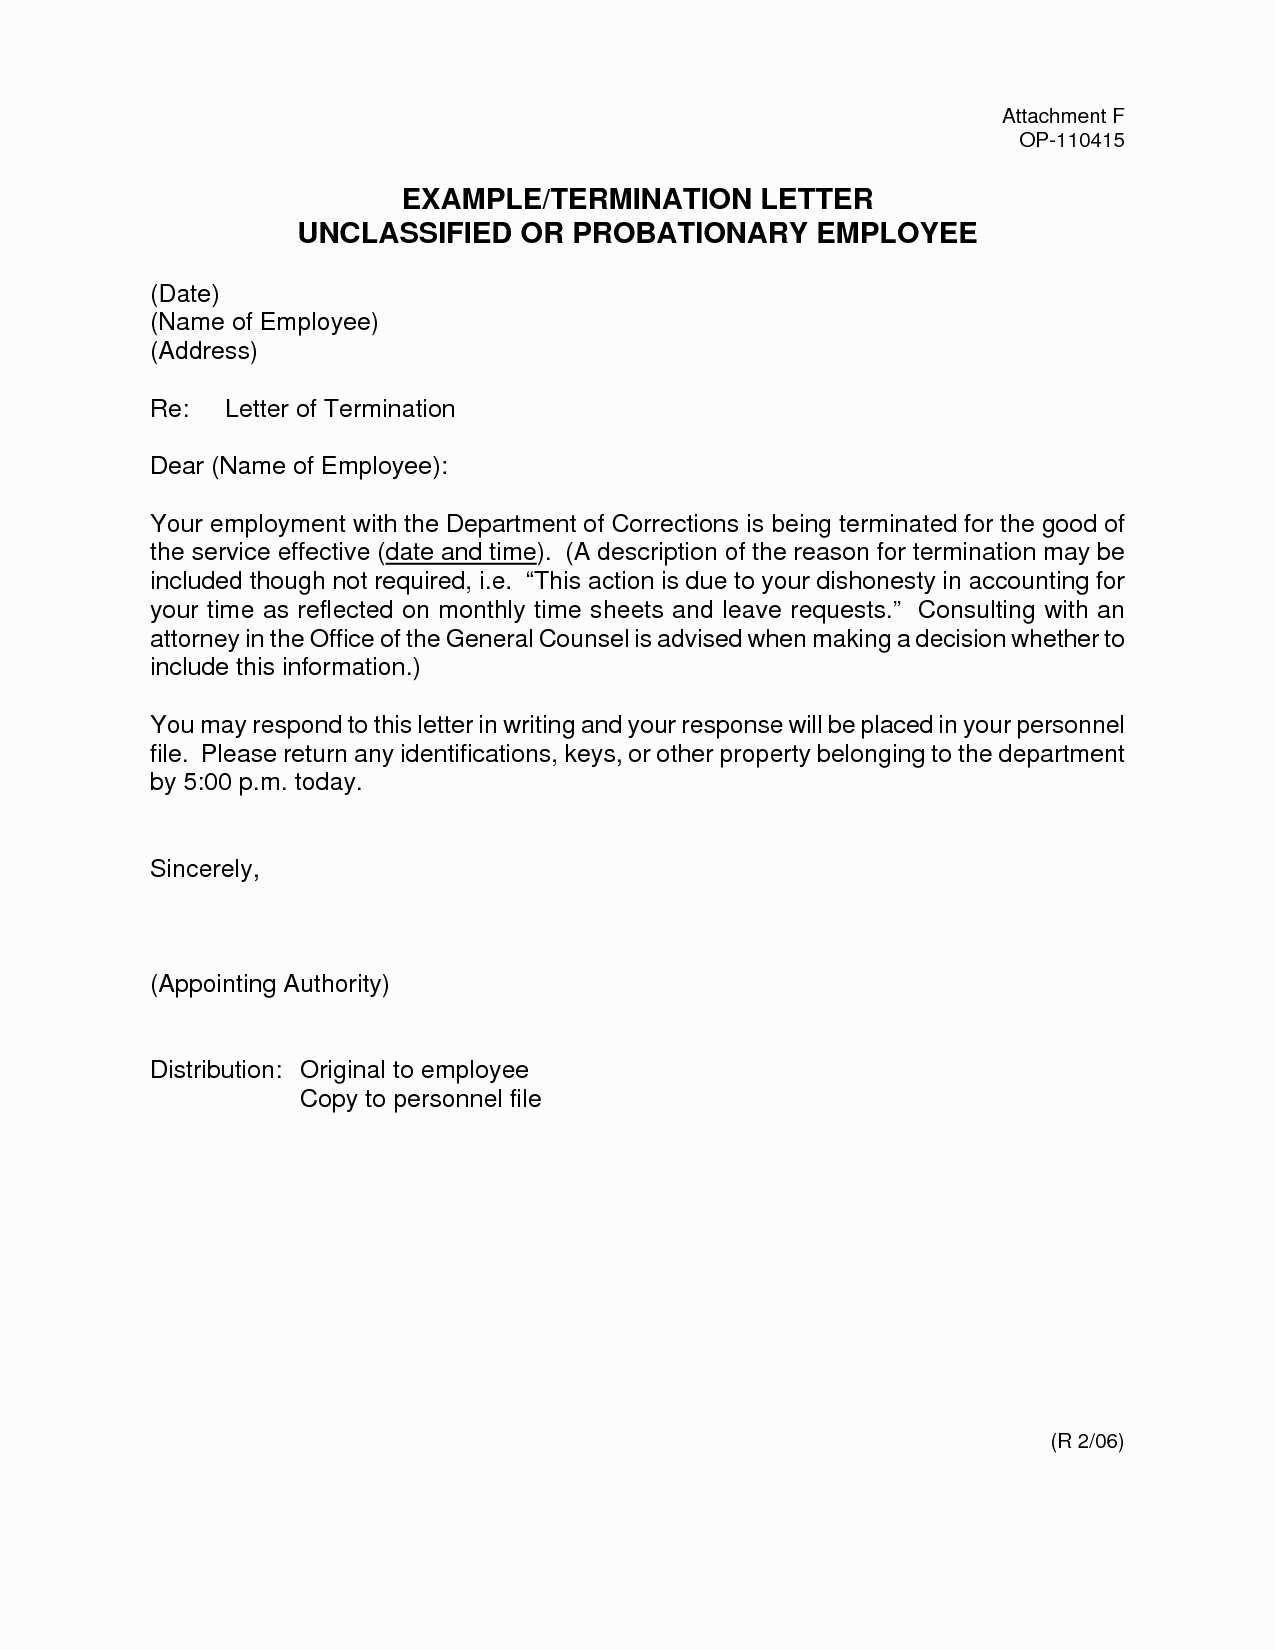 Sample Employee Termination Letter Template - Sample Certificate Employment and Pensation Fresh Employment